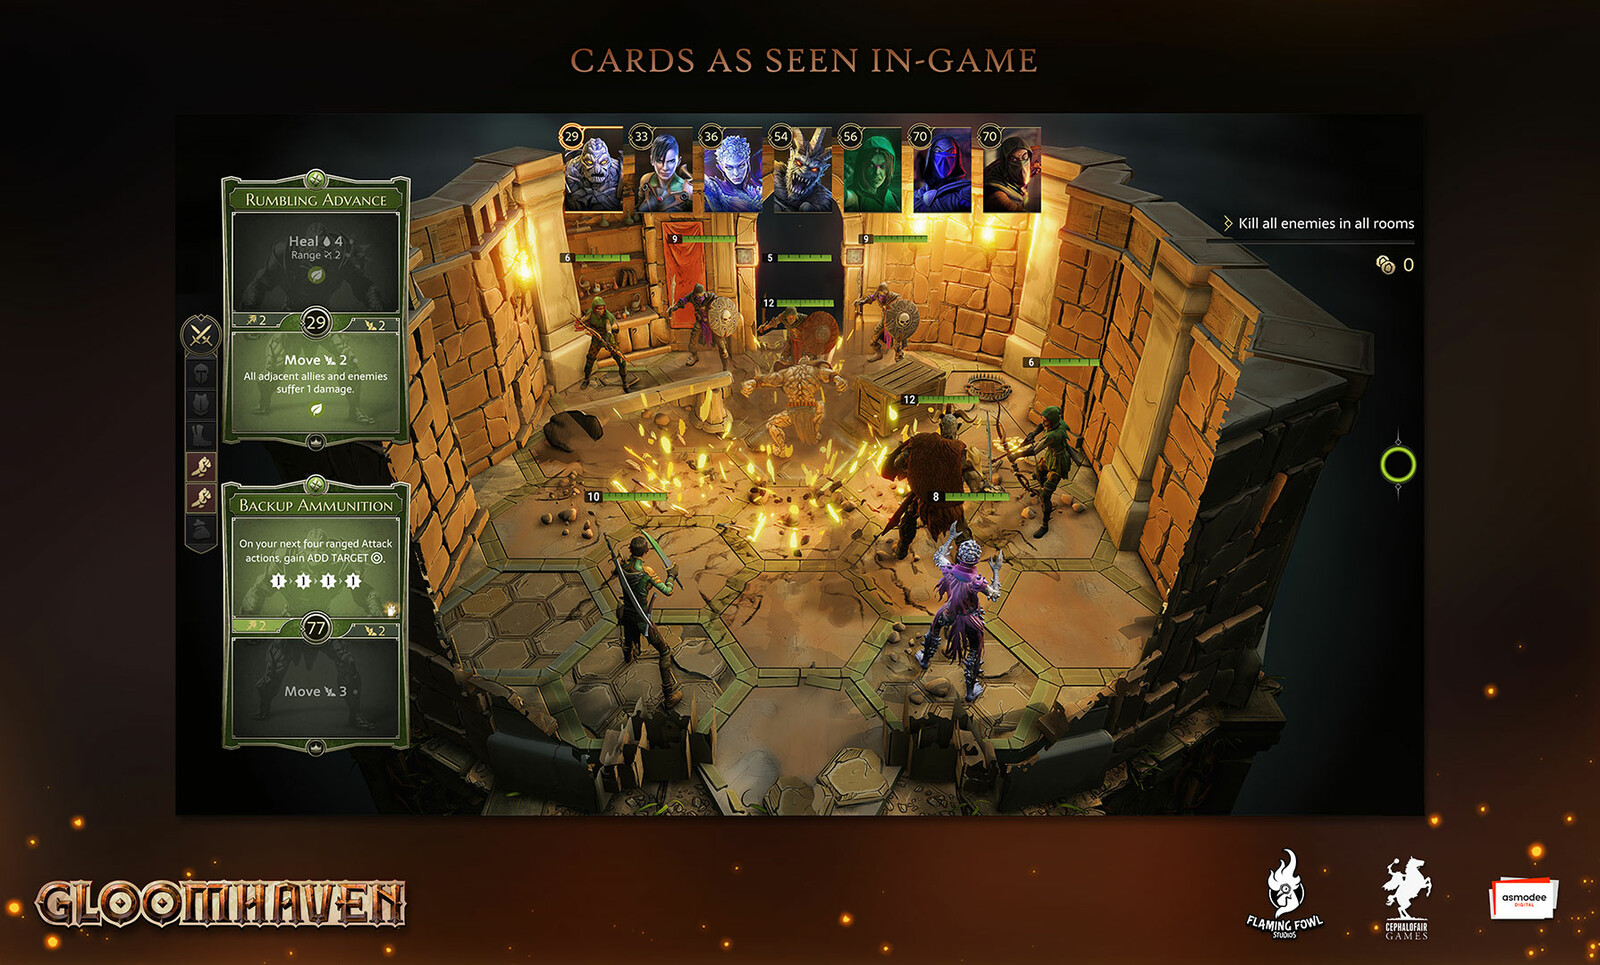 Example of cards in game.